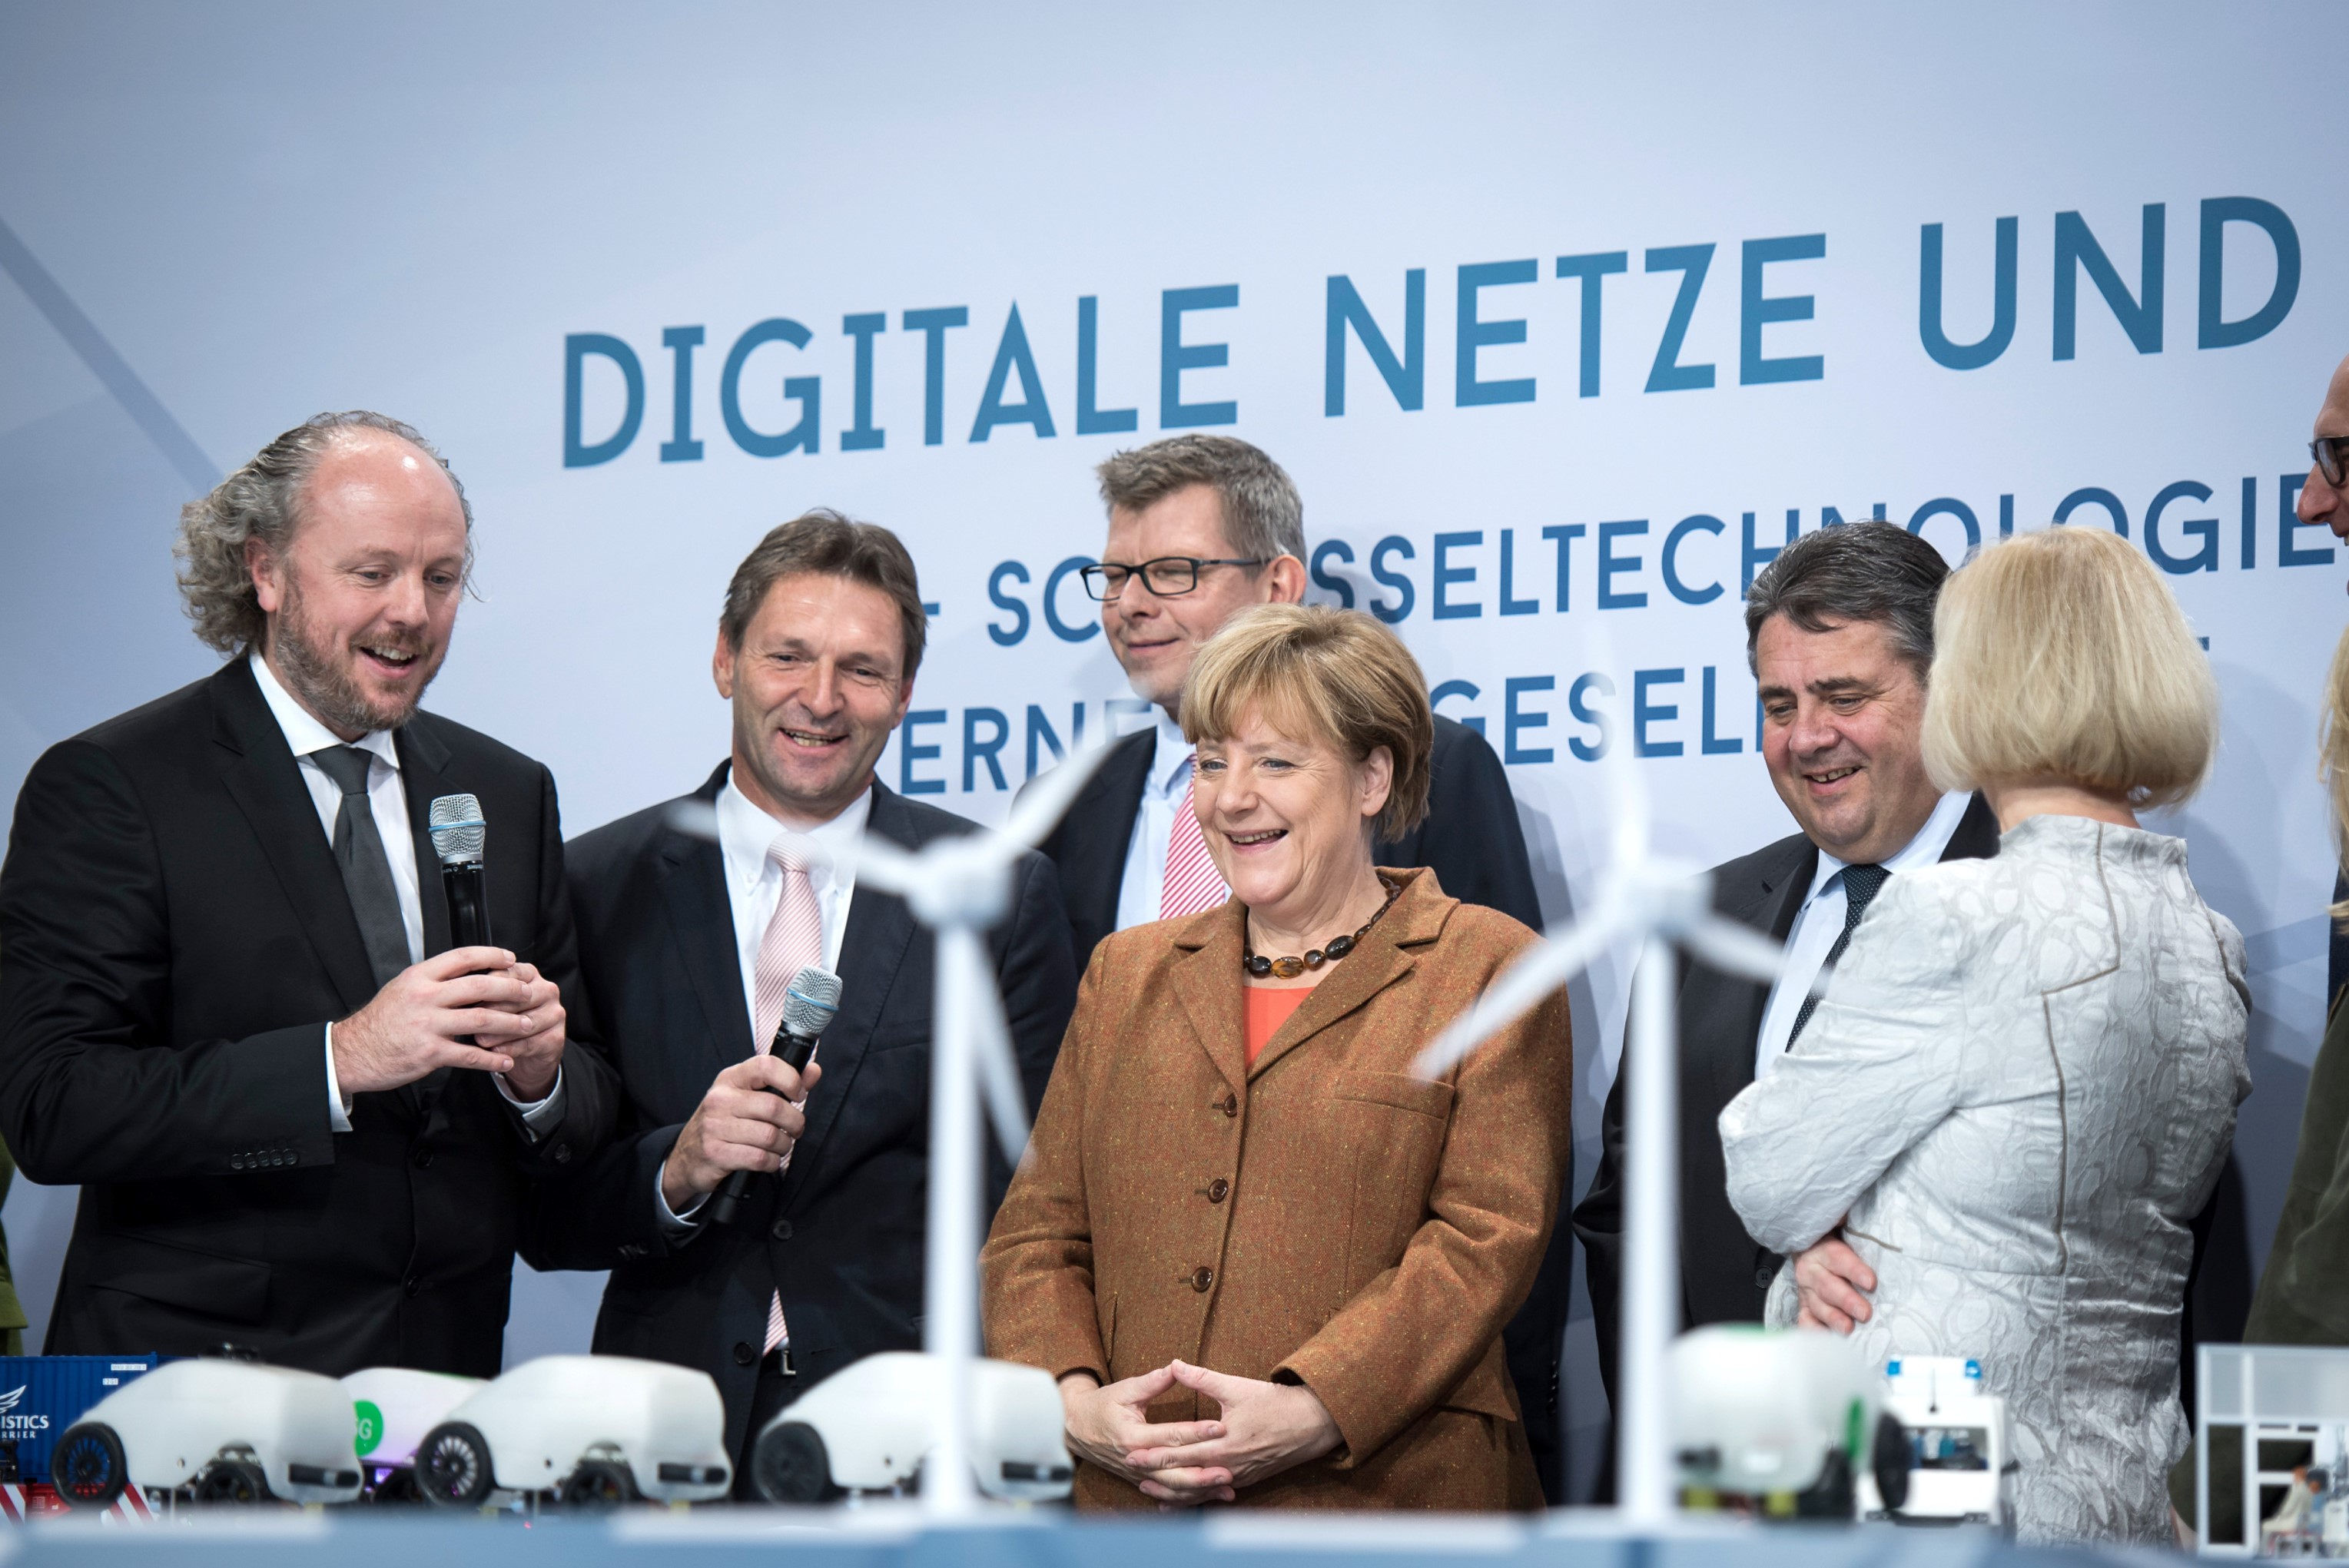 Chancellor Merkel with Prof. Fitzek